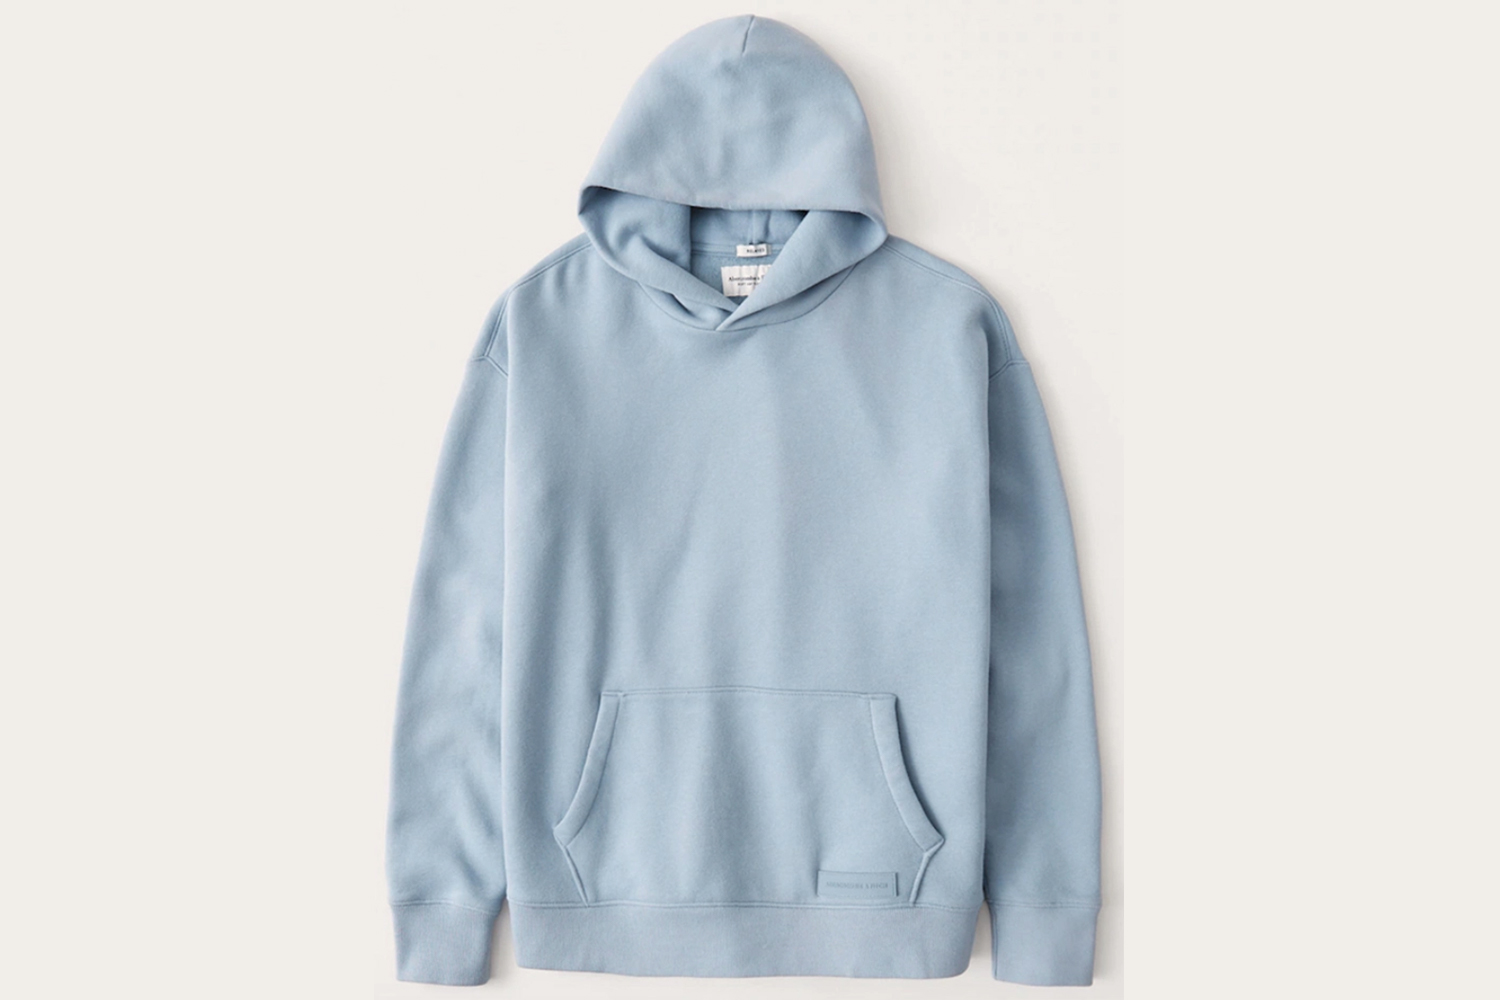 The A&F Perfect Popover Hoodie